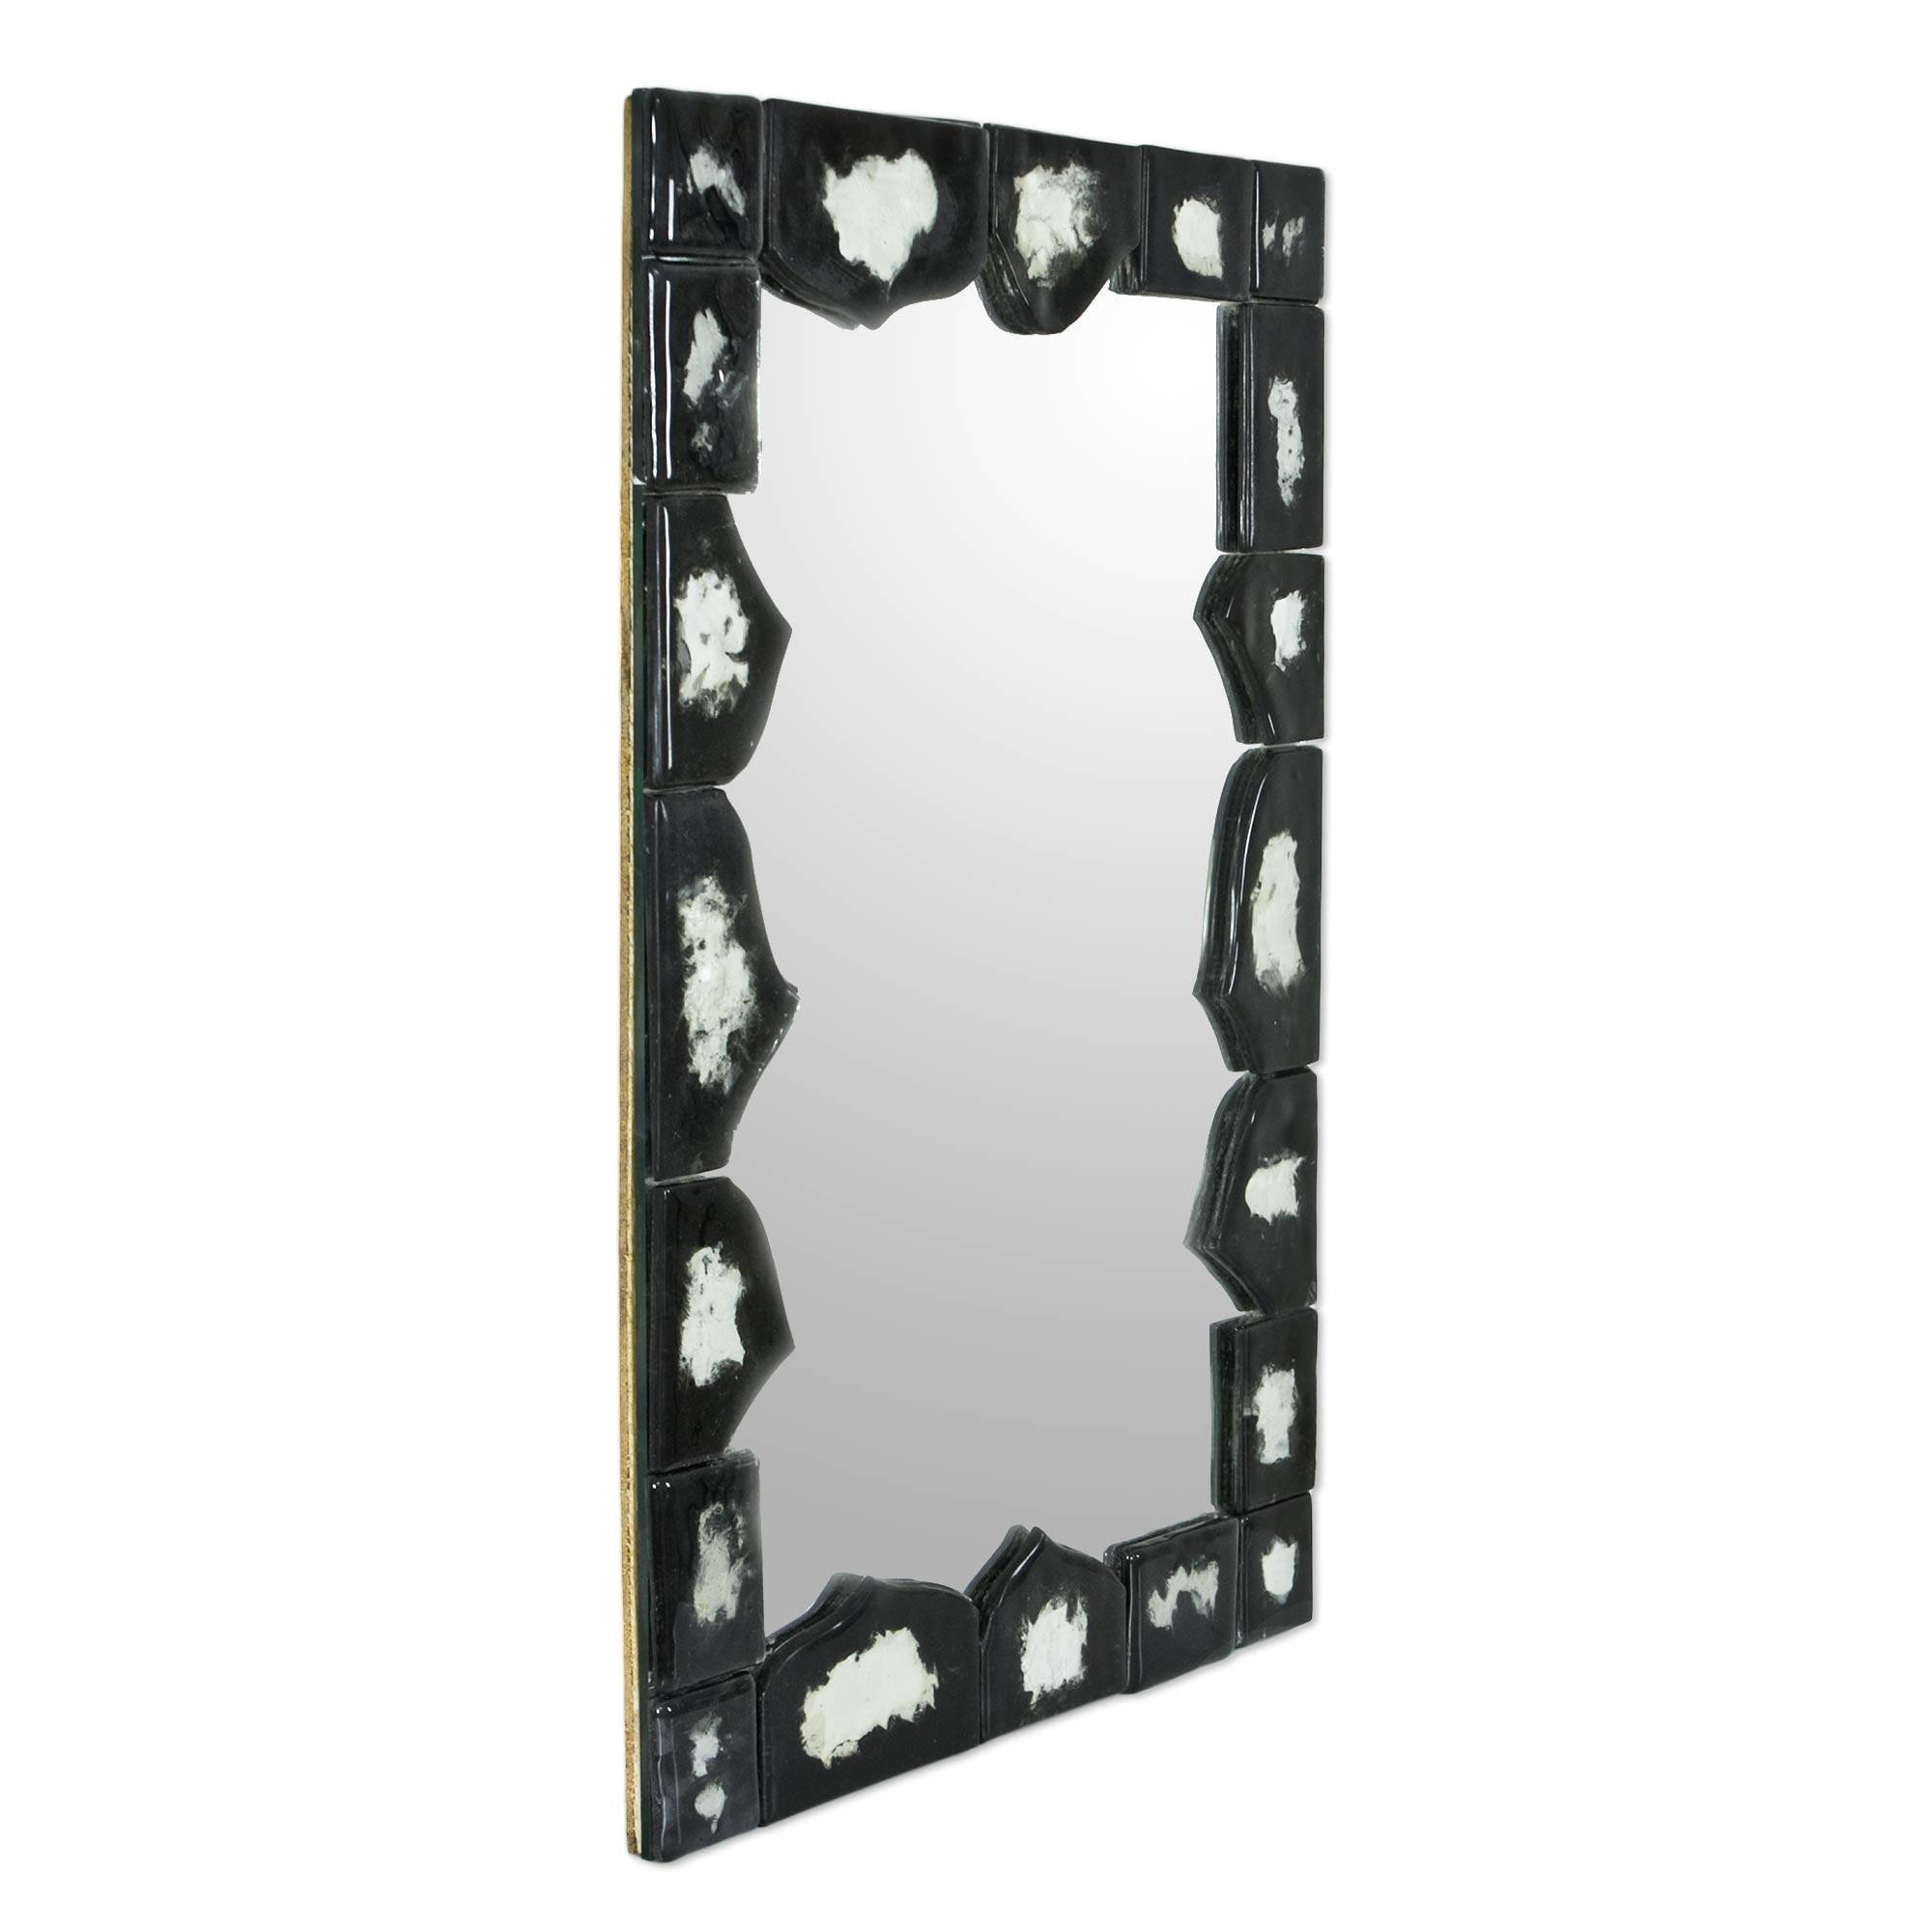 Coastal Style Wall Mirrors Pertaining To Most Popular Restless Sea Art Glass Coastal Wall Mirror (View 20 of 20)